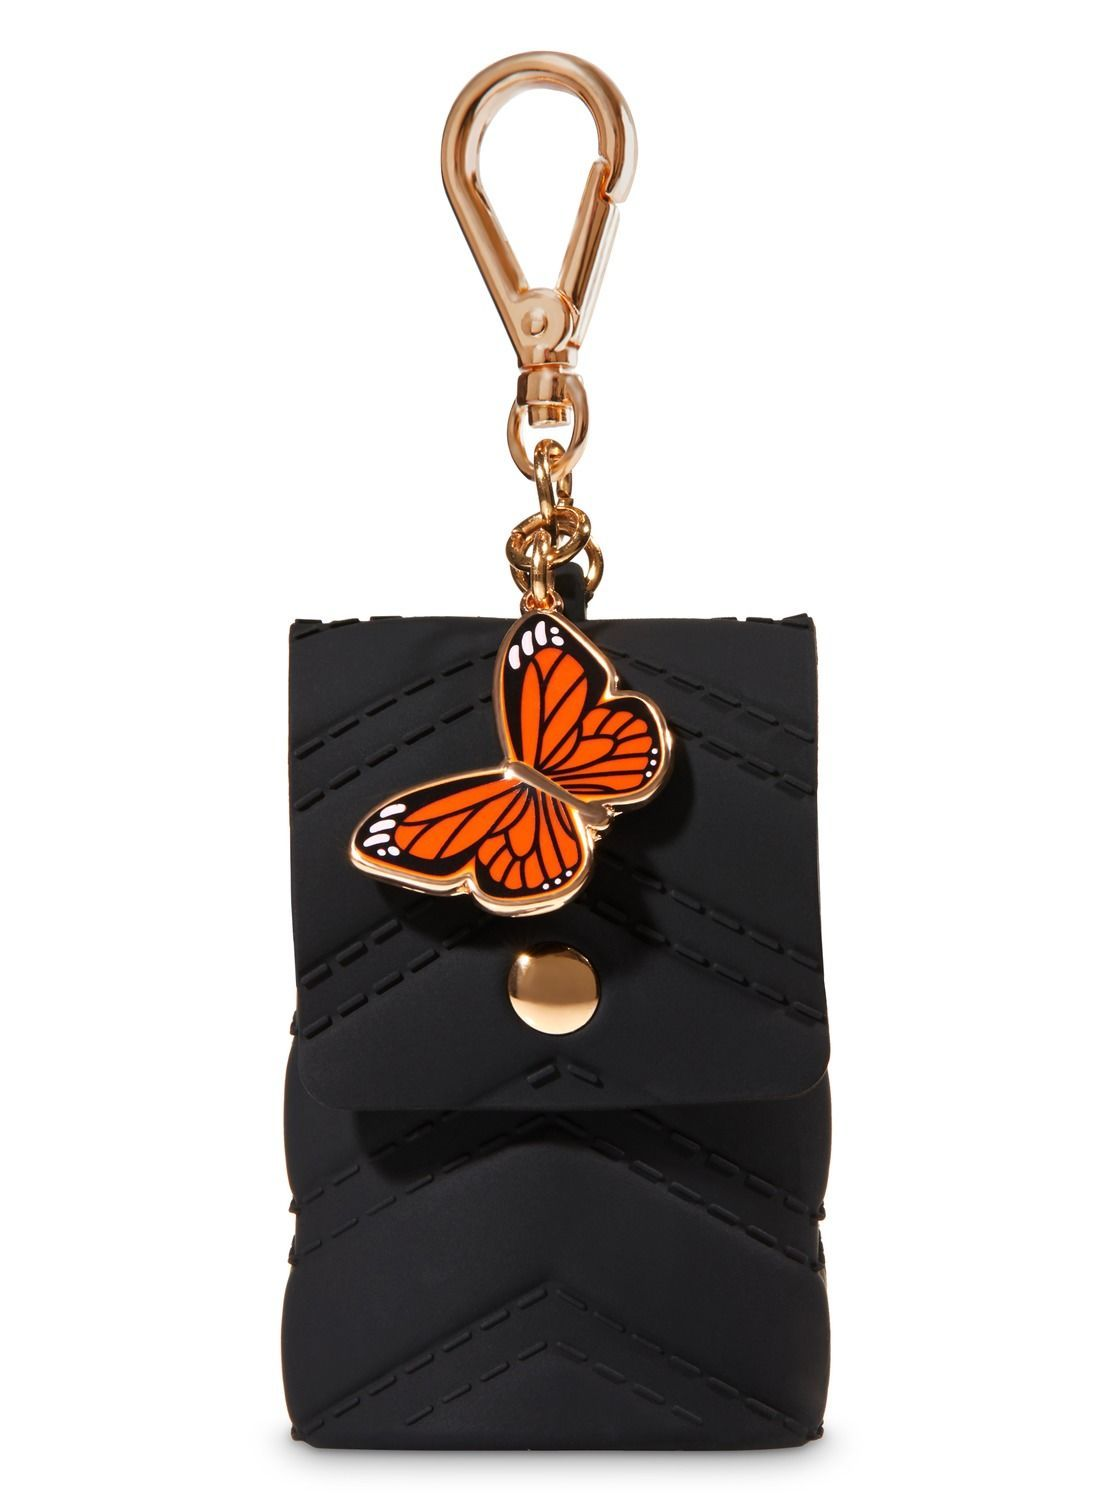 Purse With Butterfly Charm Pocketbac Holder By Bath Body Works